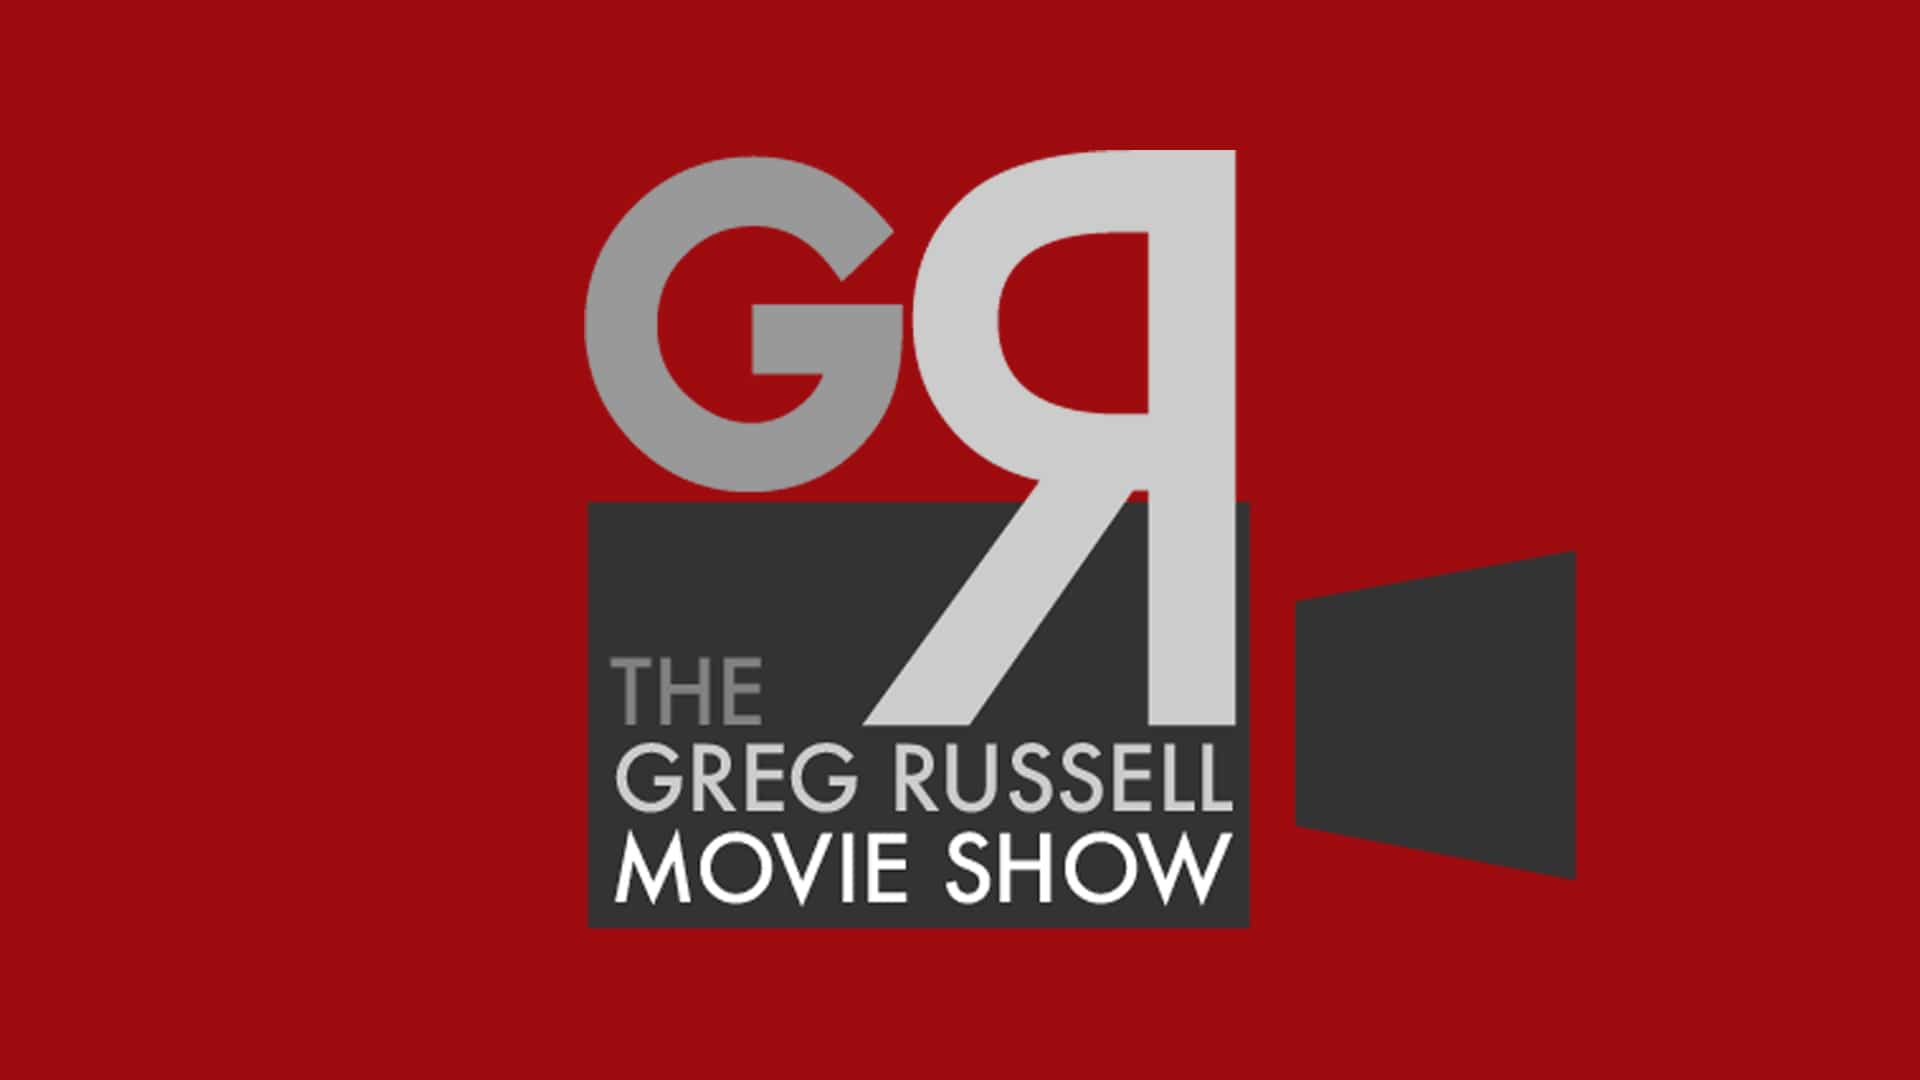 The Greg Russell Movie Show